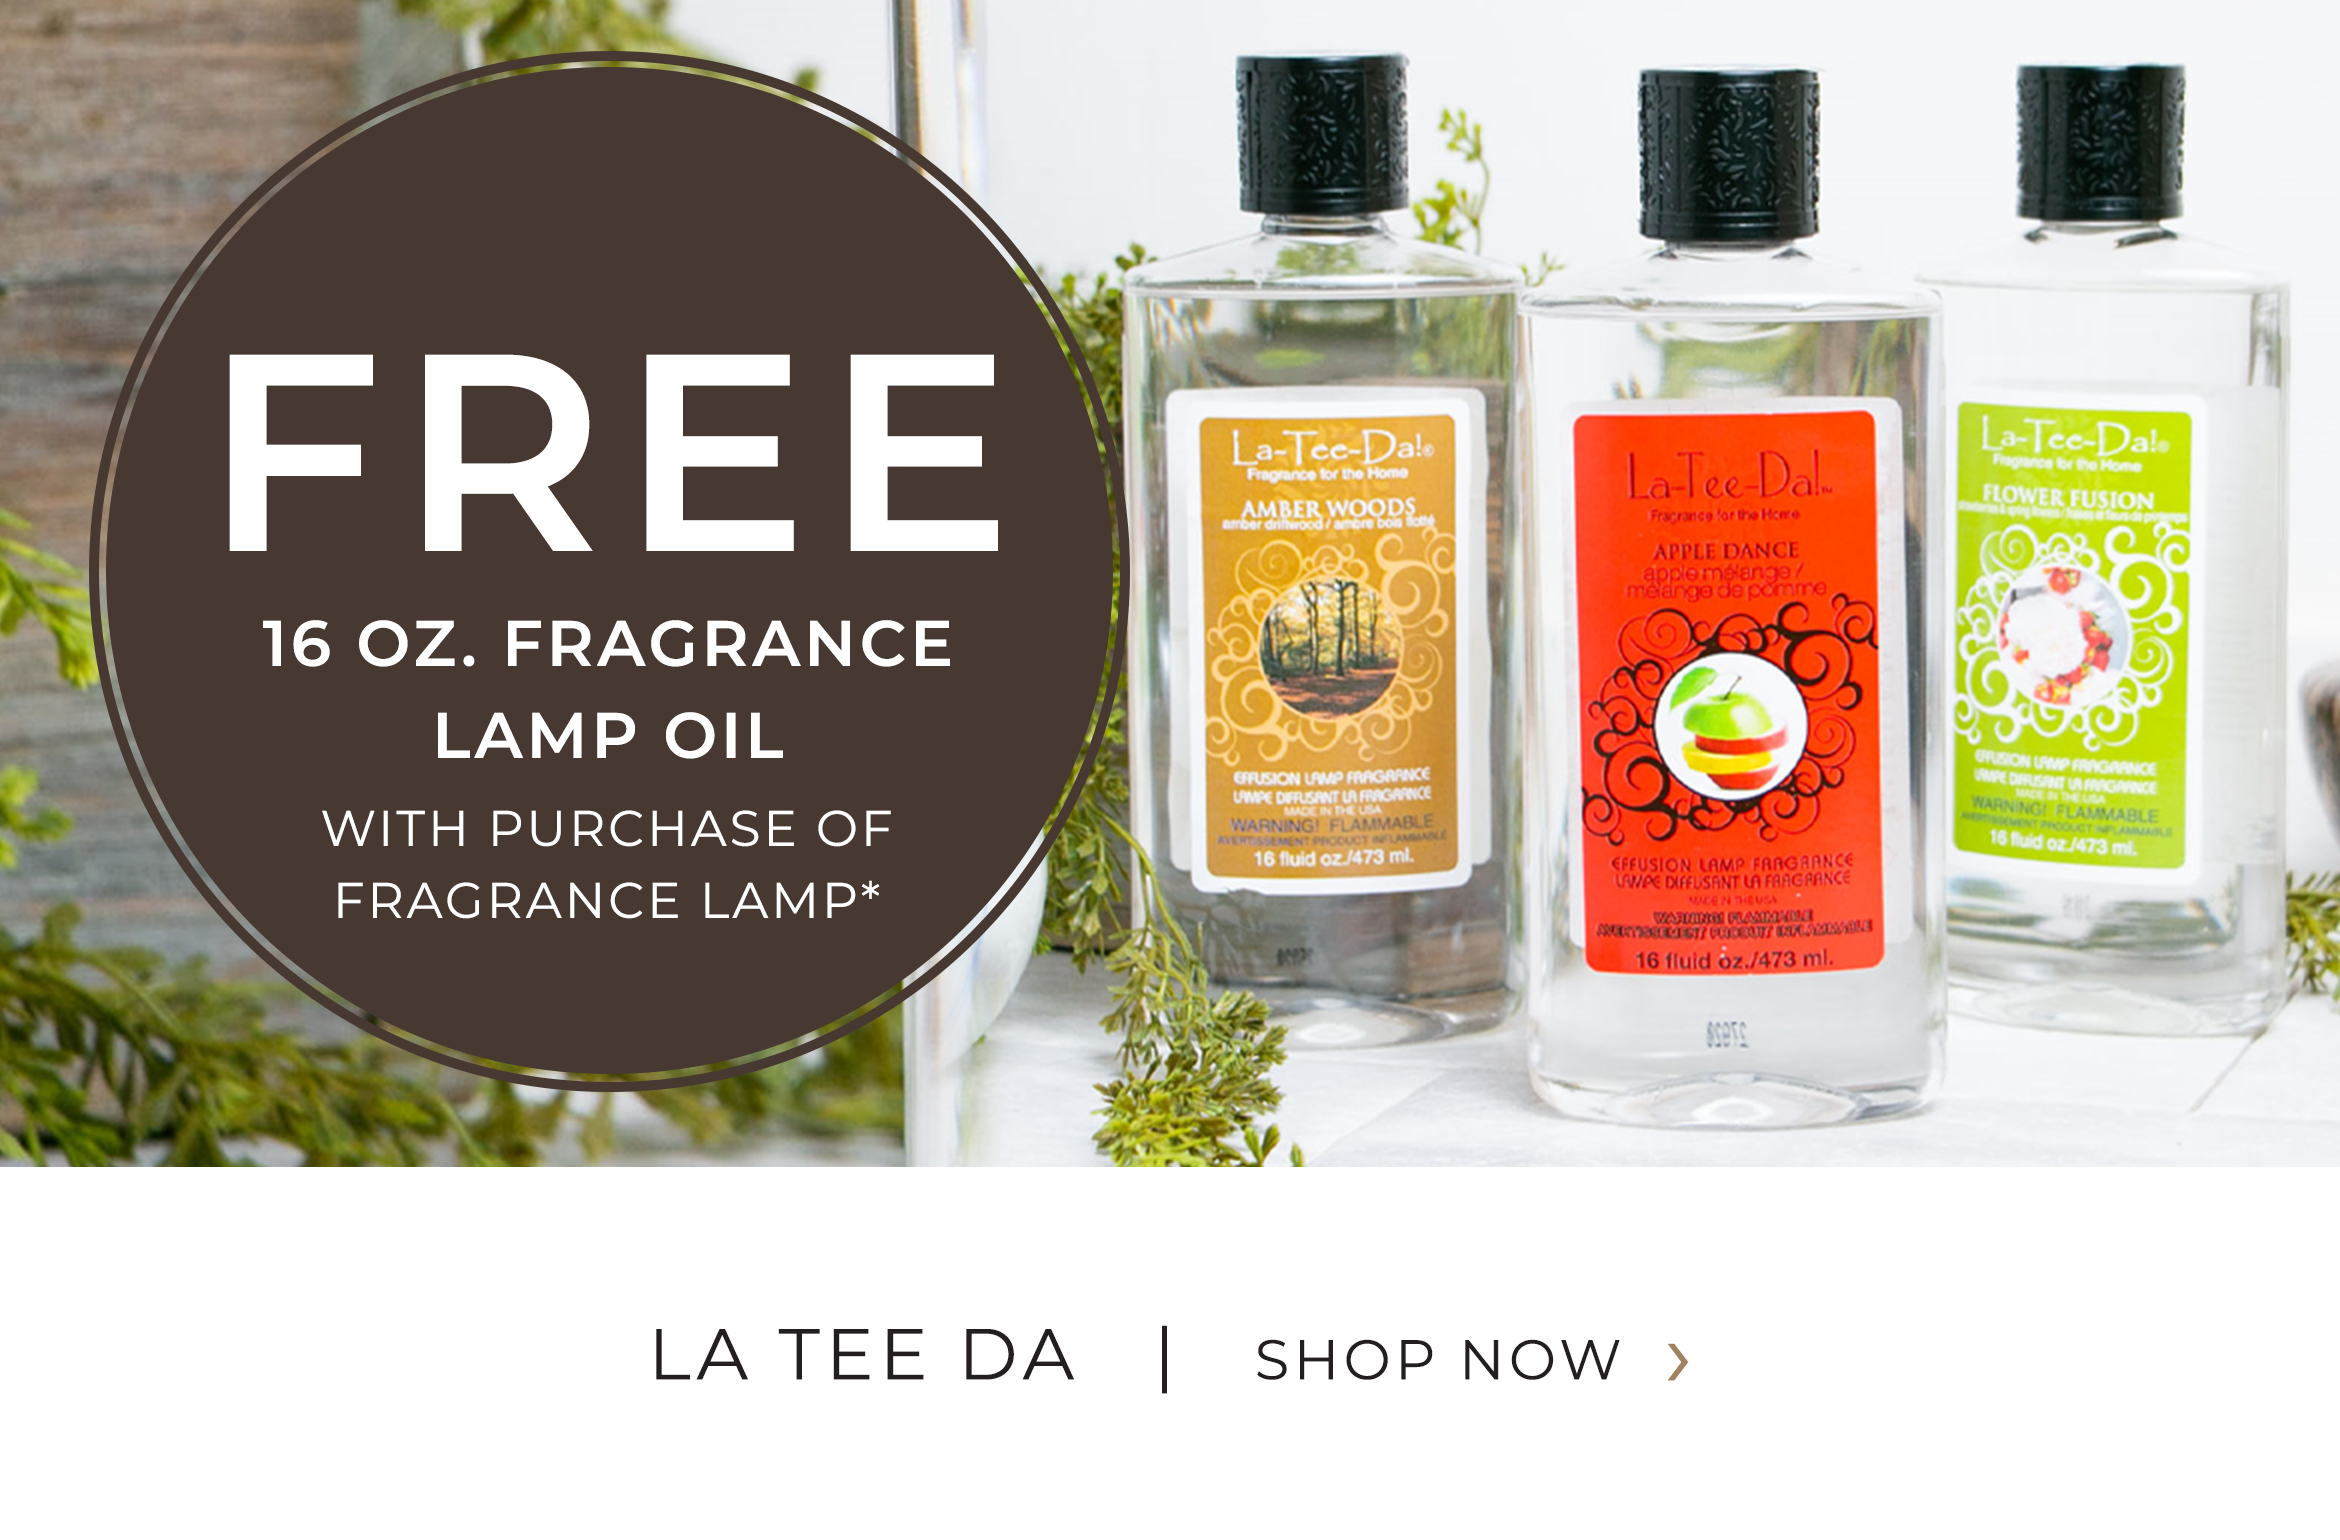 La Tee Da - FREE 16 ounce fragrance lamp oil with purchase of Fragrance Lamp